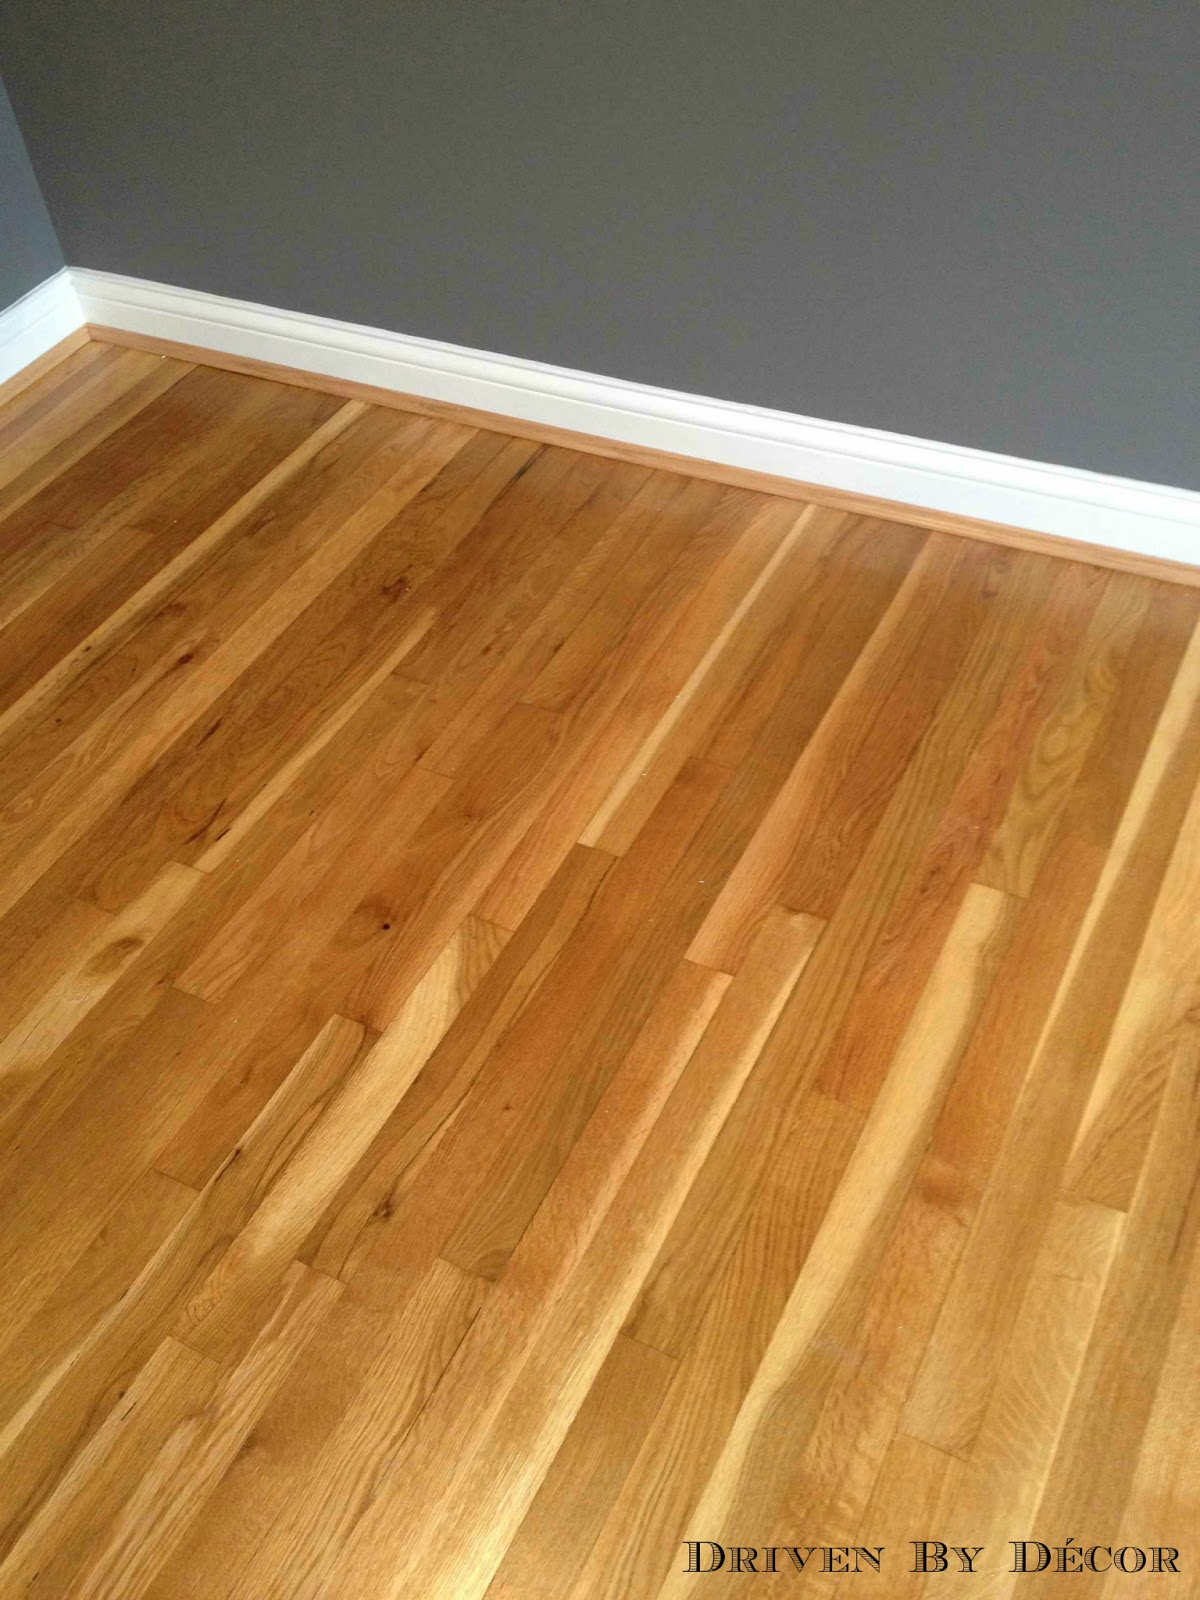 Refinishing Hardwood Floors: Water Based vs. Oil Based Polyurethane - Refinishing Hardwood Floors: Water Based Vs. Oil Based